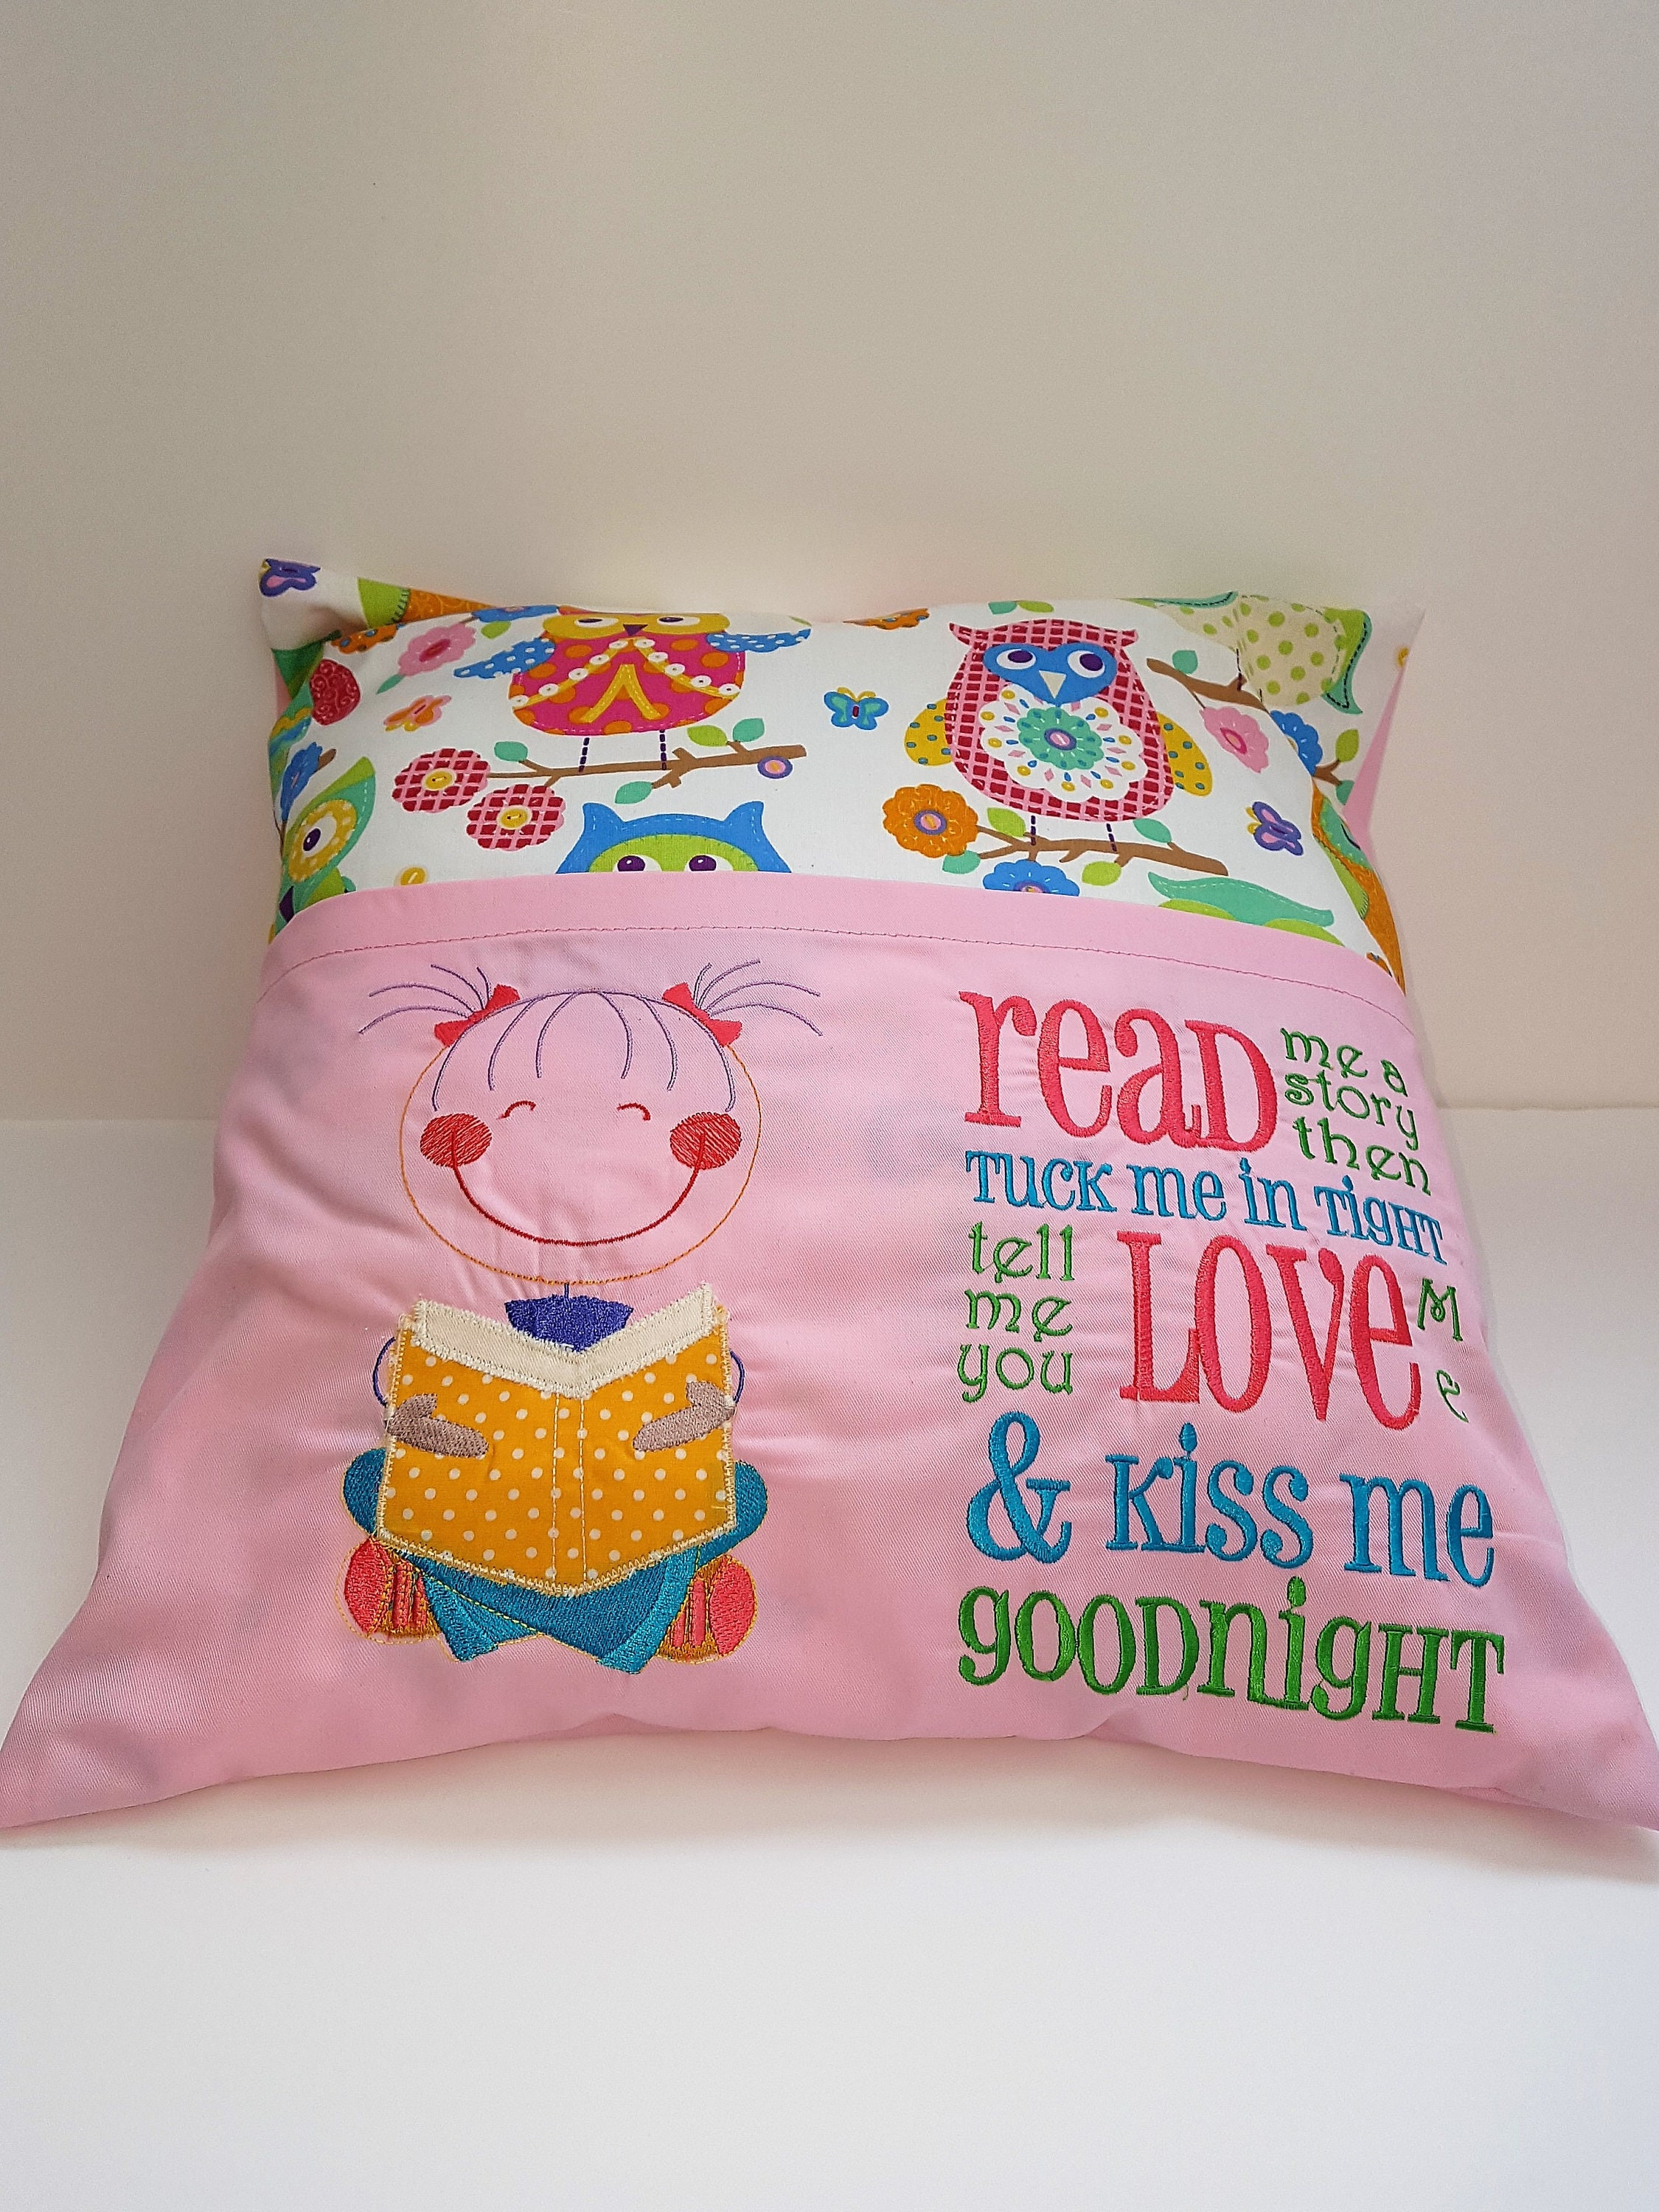 embroidered read me a book cushion pillow